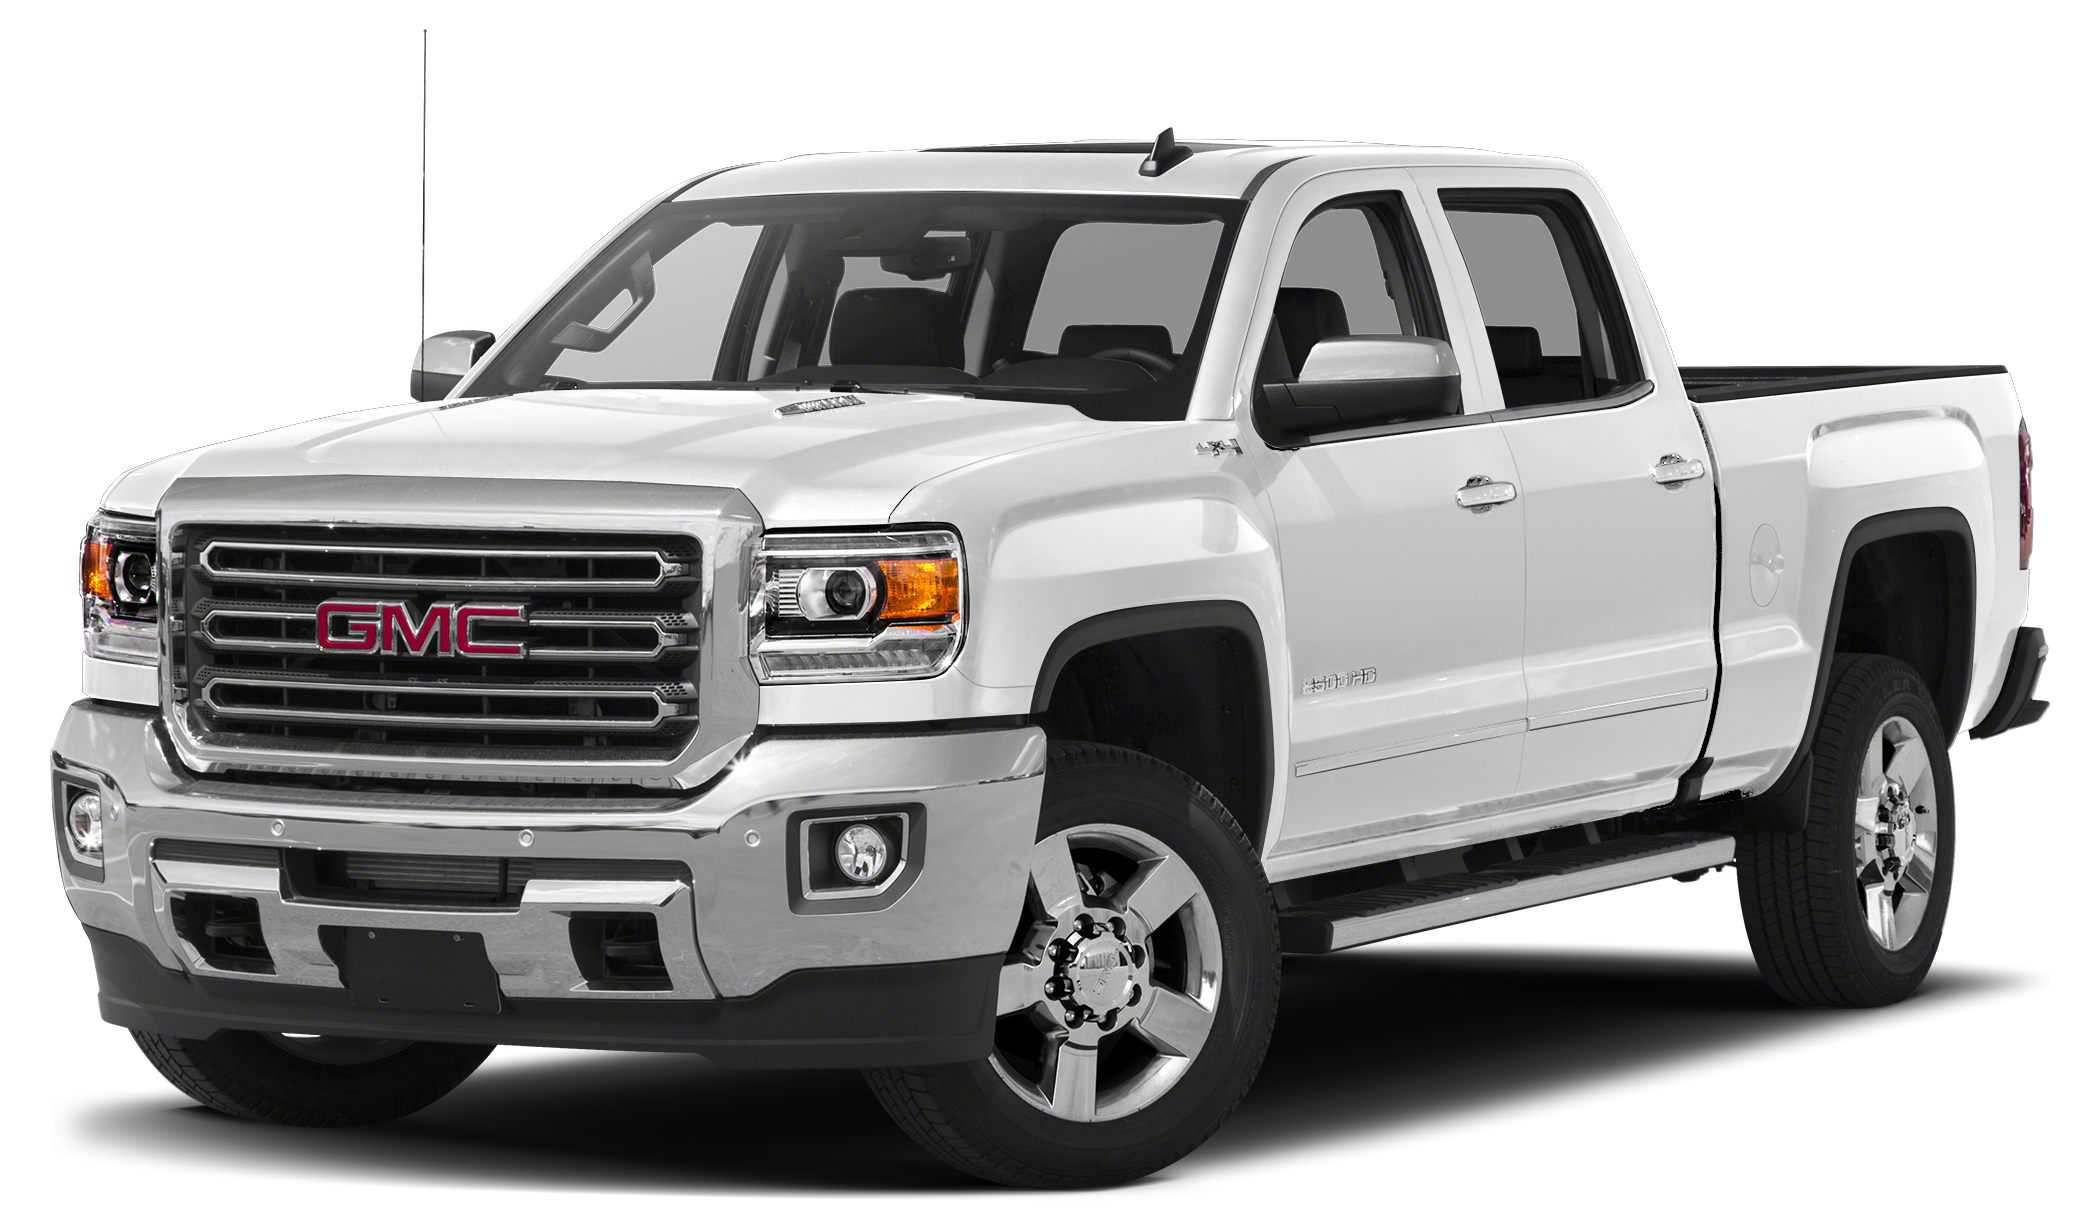 2017 gmc sierra 2500 for sale in westbrook me 1gt22teg9hz359736. Black Bedroom Furniture Sets. Home Design Ideas